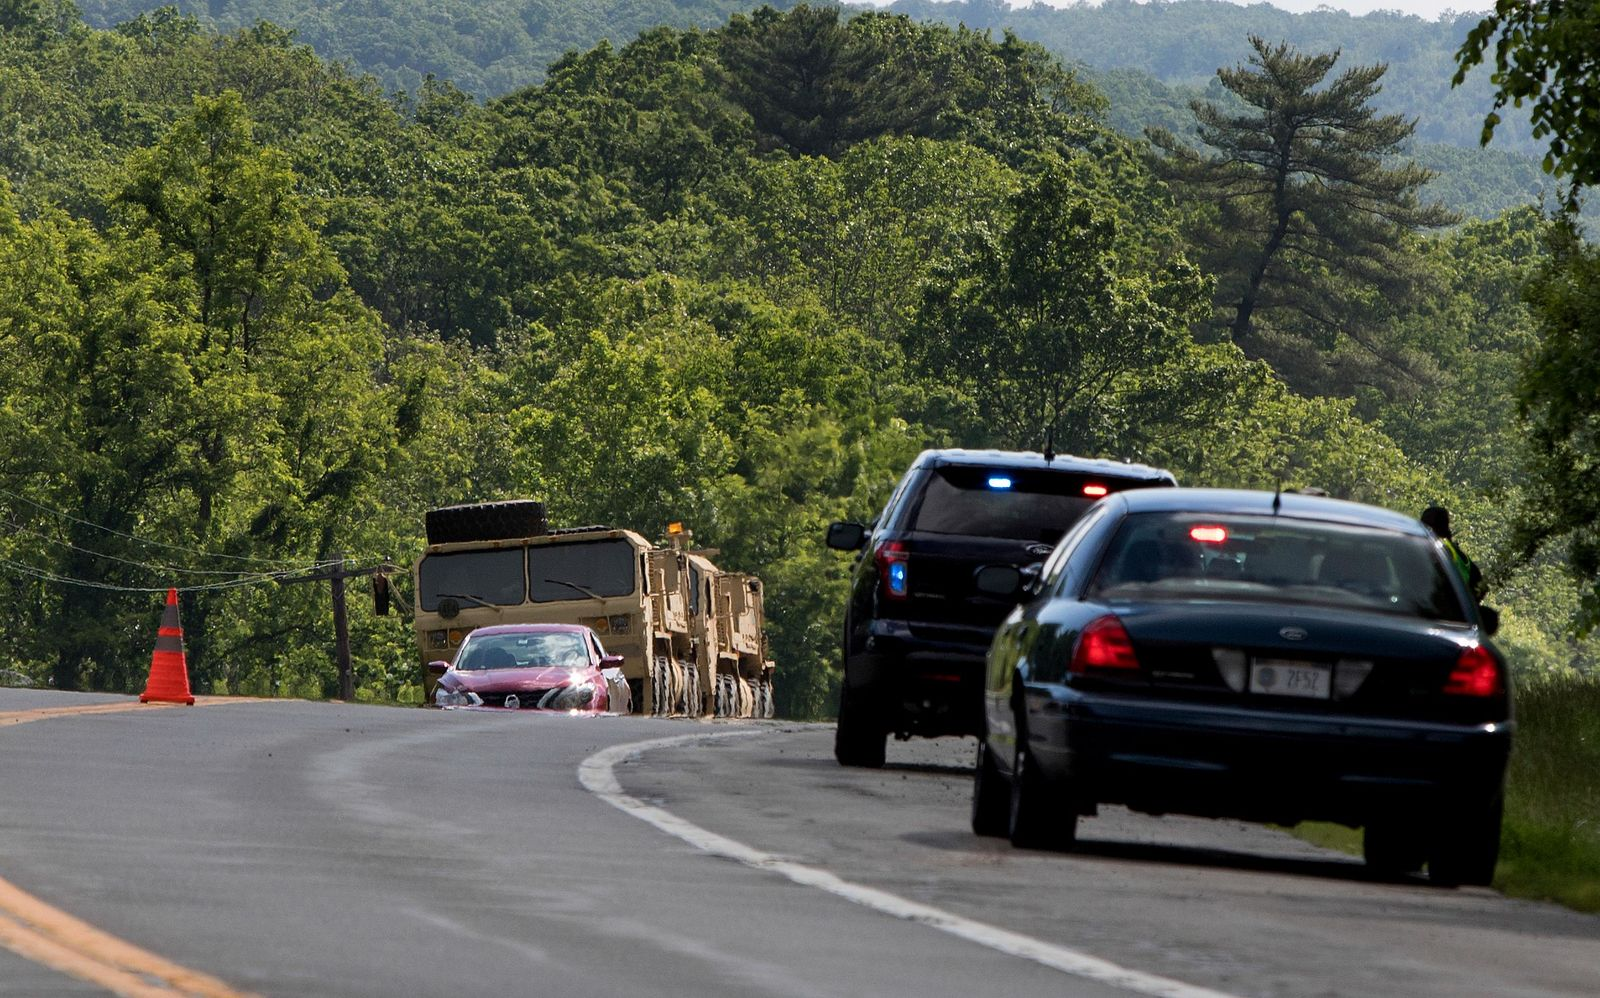 Military vehicles sit alongside Route 293 near the site where an armored personnel vehicle overturned killing at least one person, Thursday, June 6, 2019, in Cornwall, N.Y.{ } (AP Photo/Allyse Pulliam)